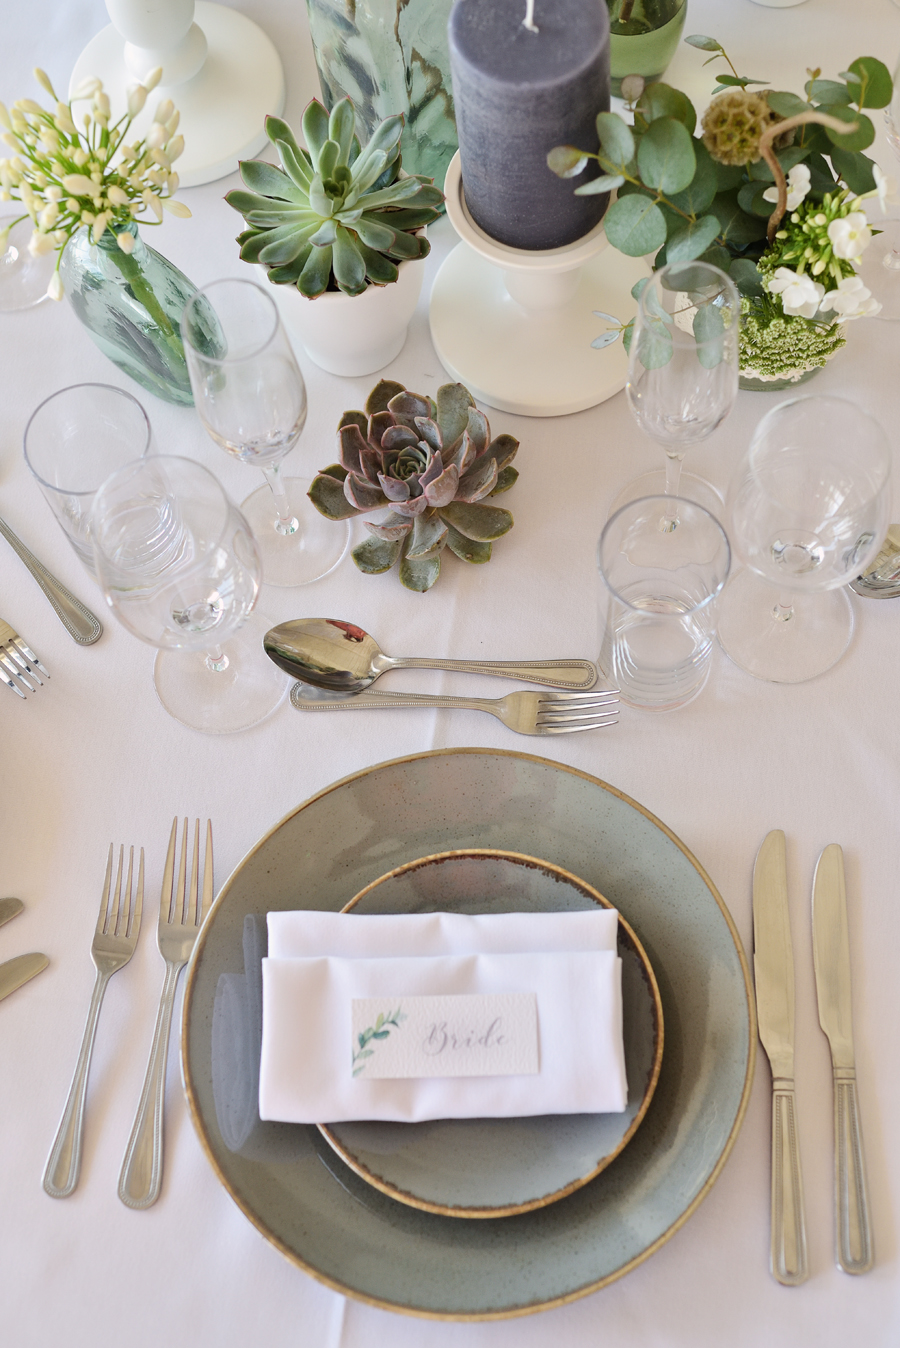 Marina Walker Photography's styled shoot with succulents and affordable details for a minimalist boho wedding (7)